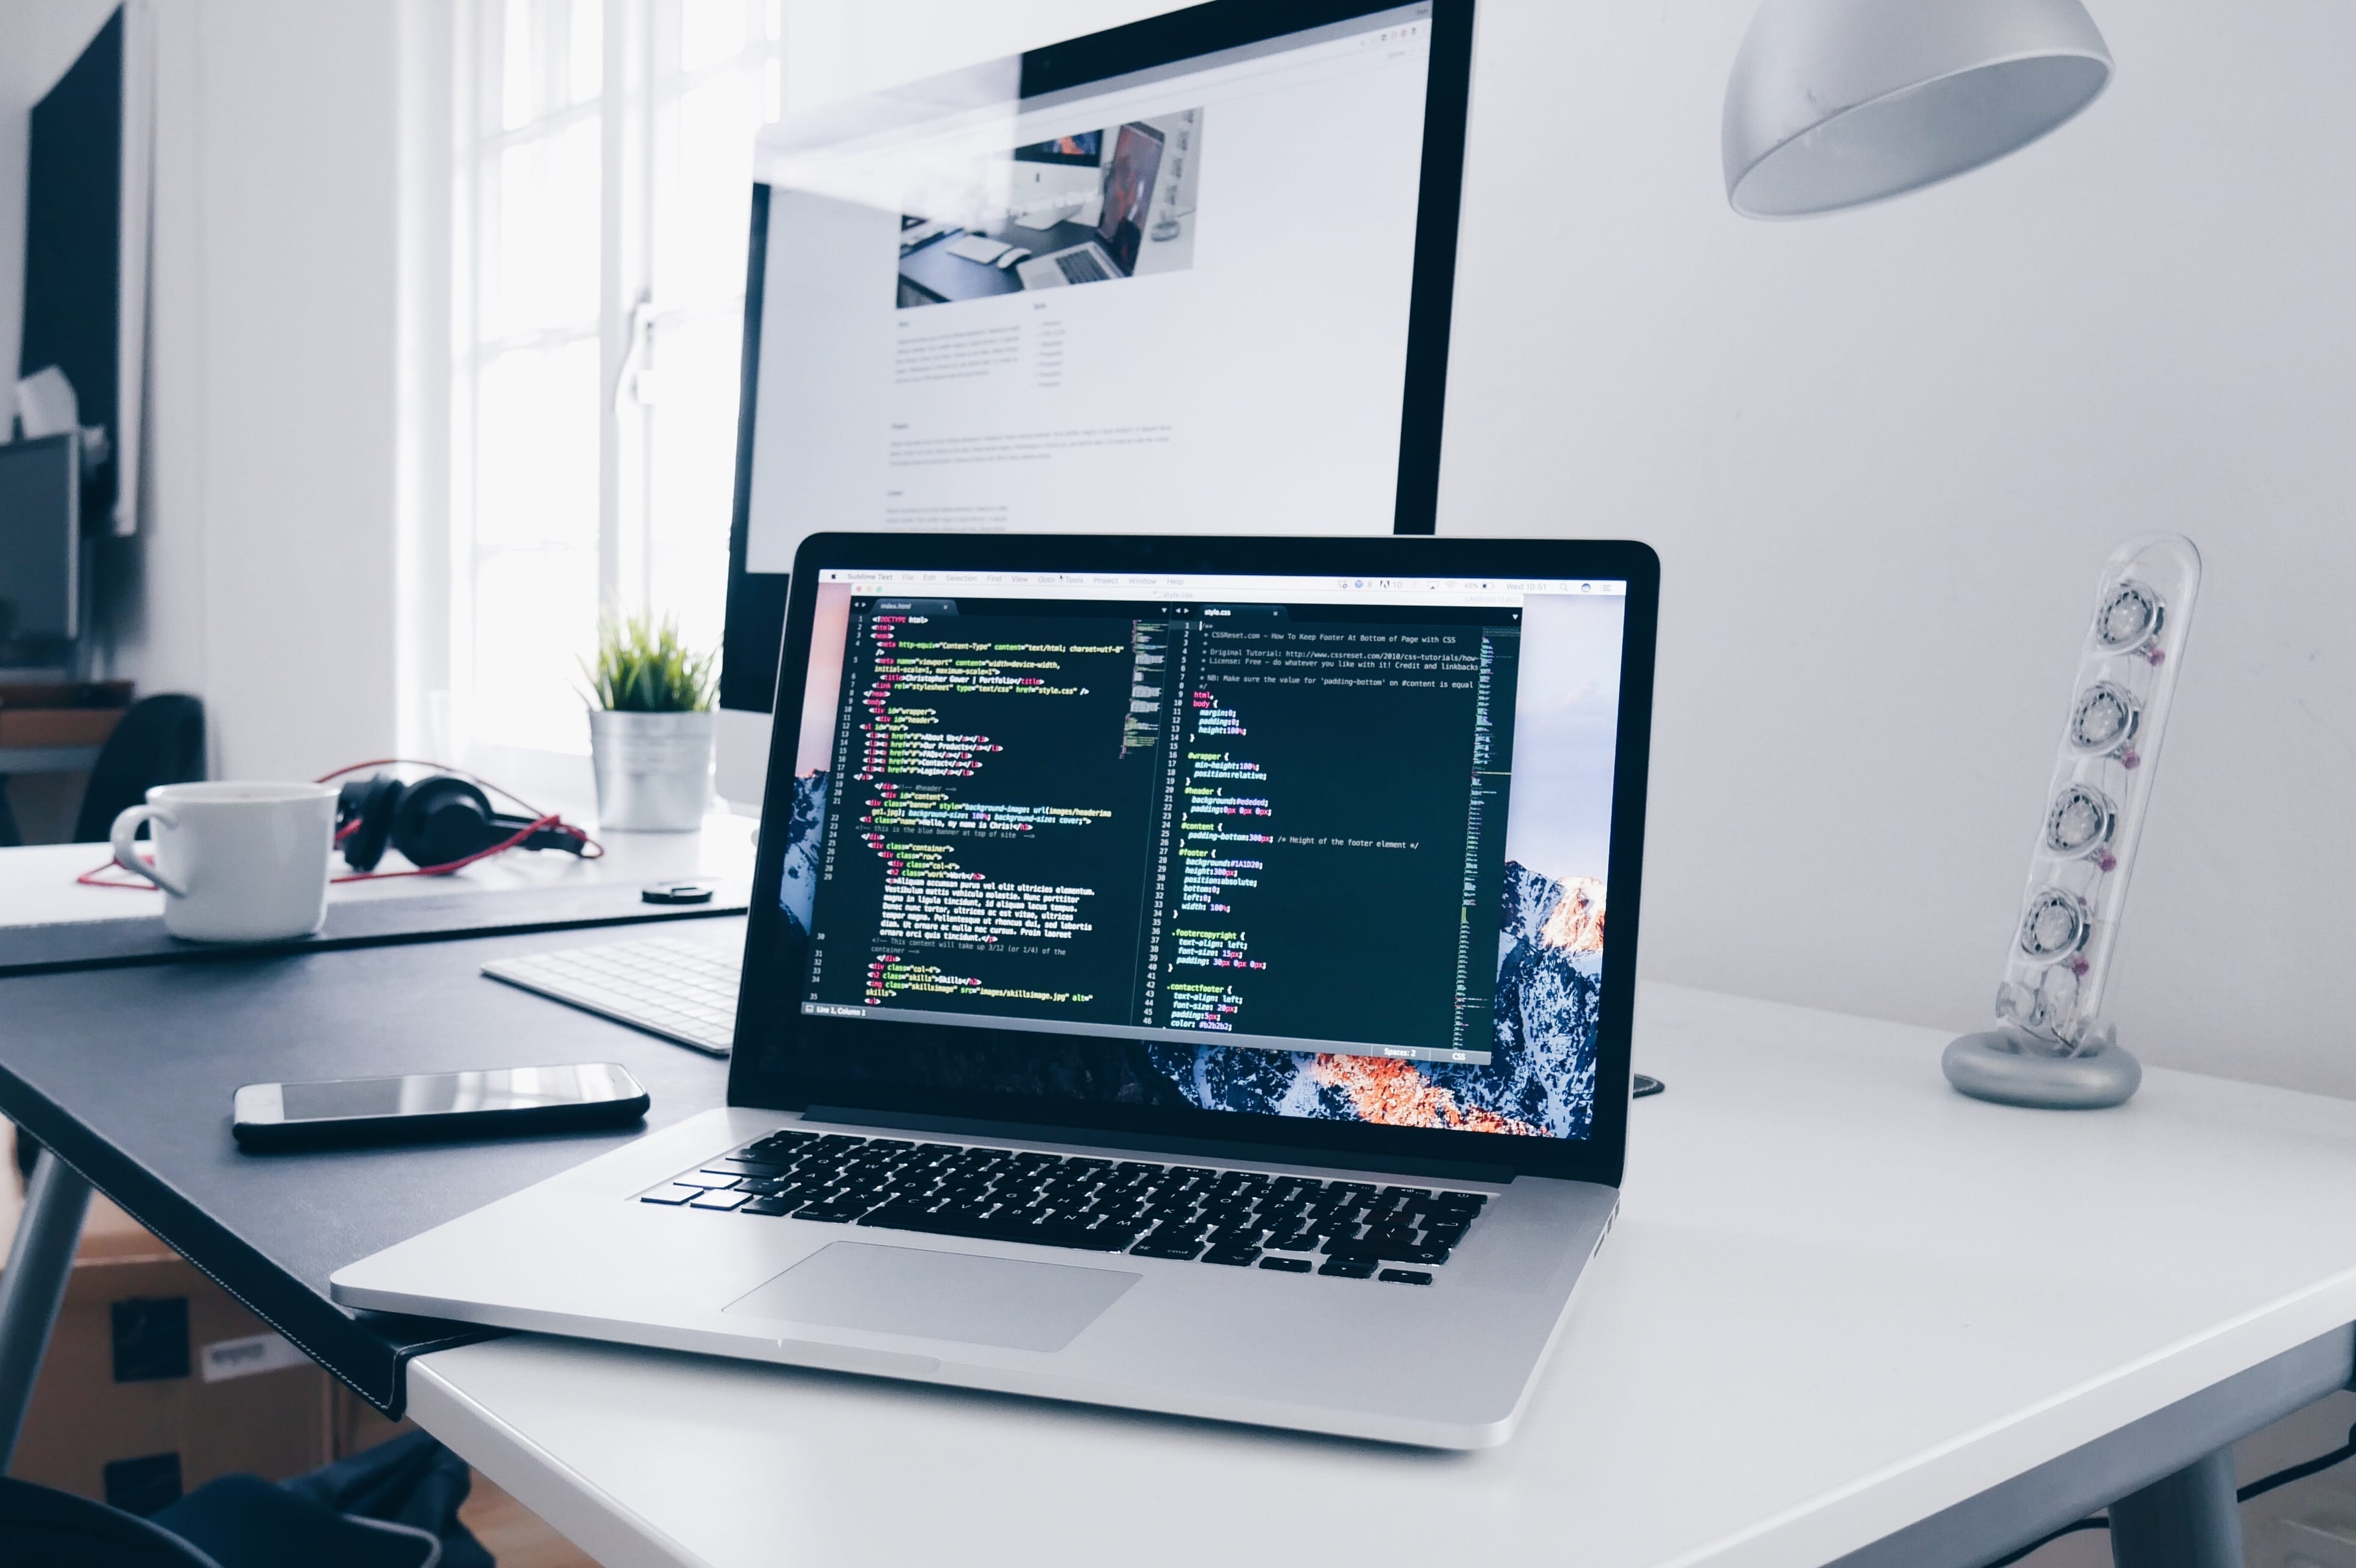 MacBook with lines of code on its screen on a desk; image by Christopher Gower, via Unsplash.com.